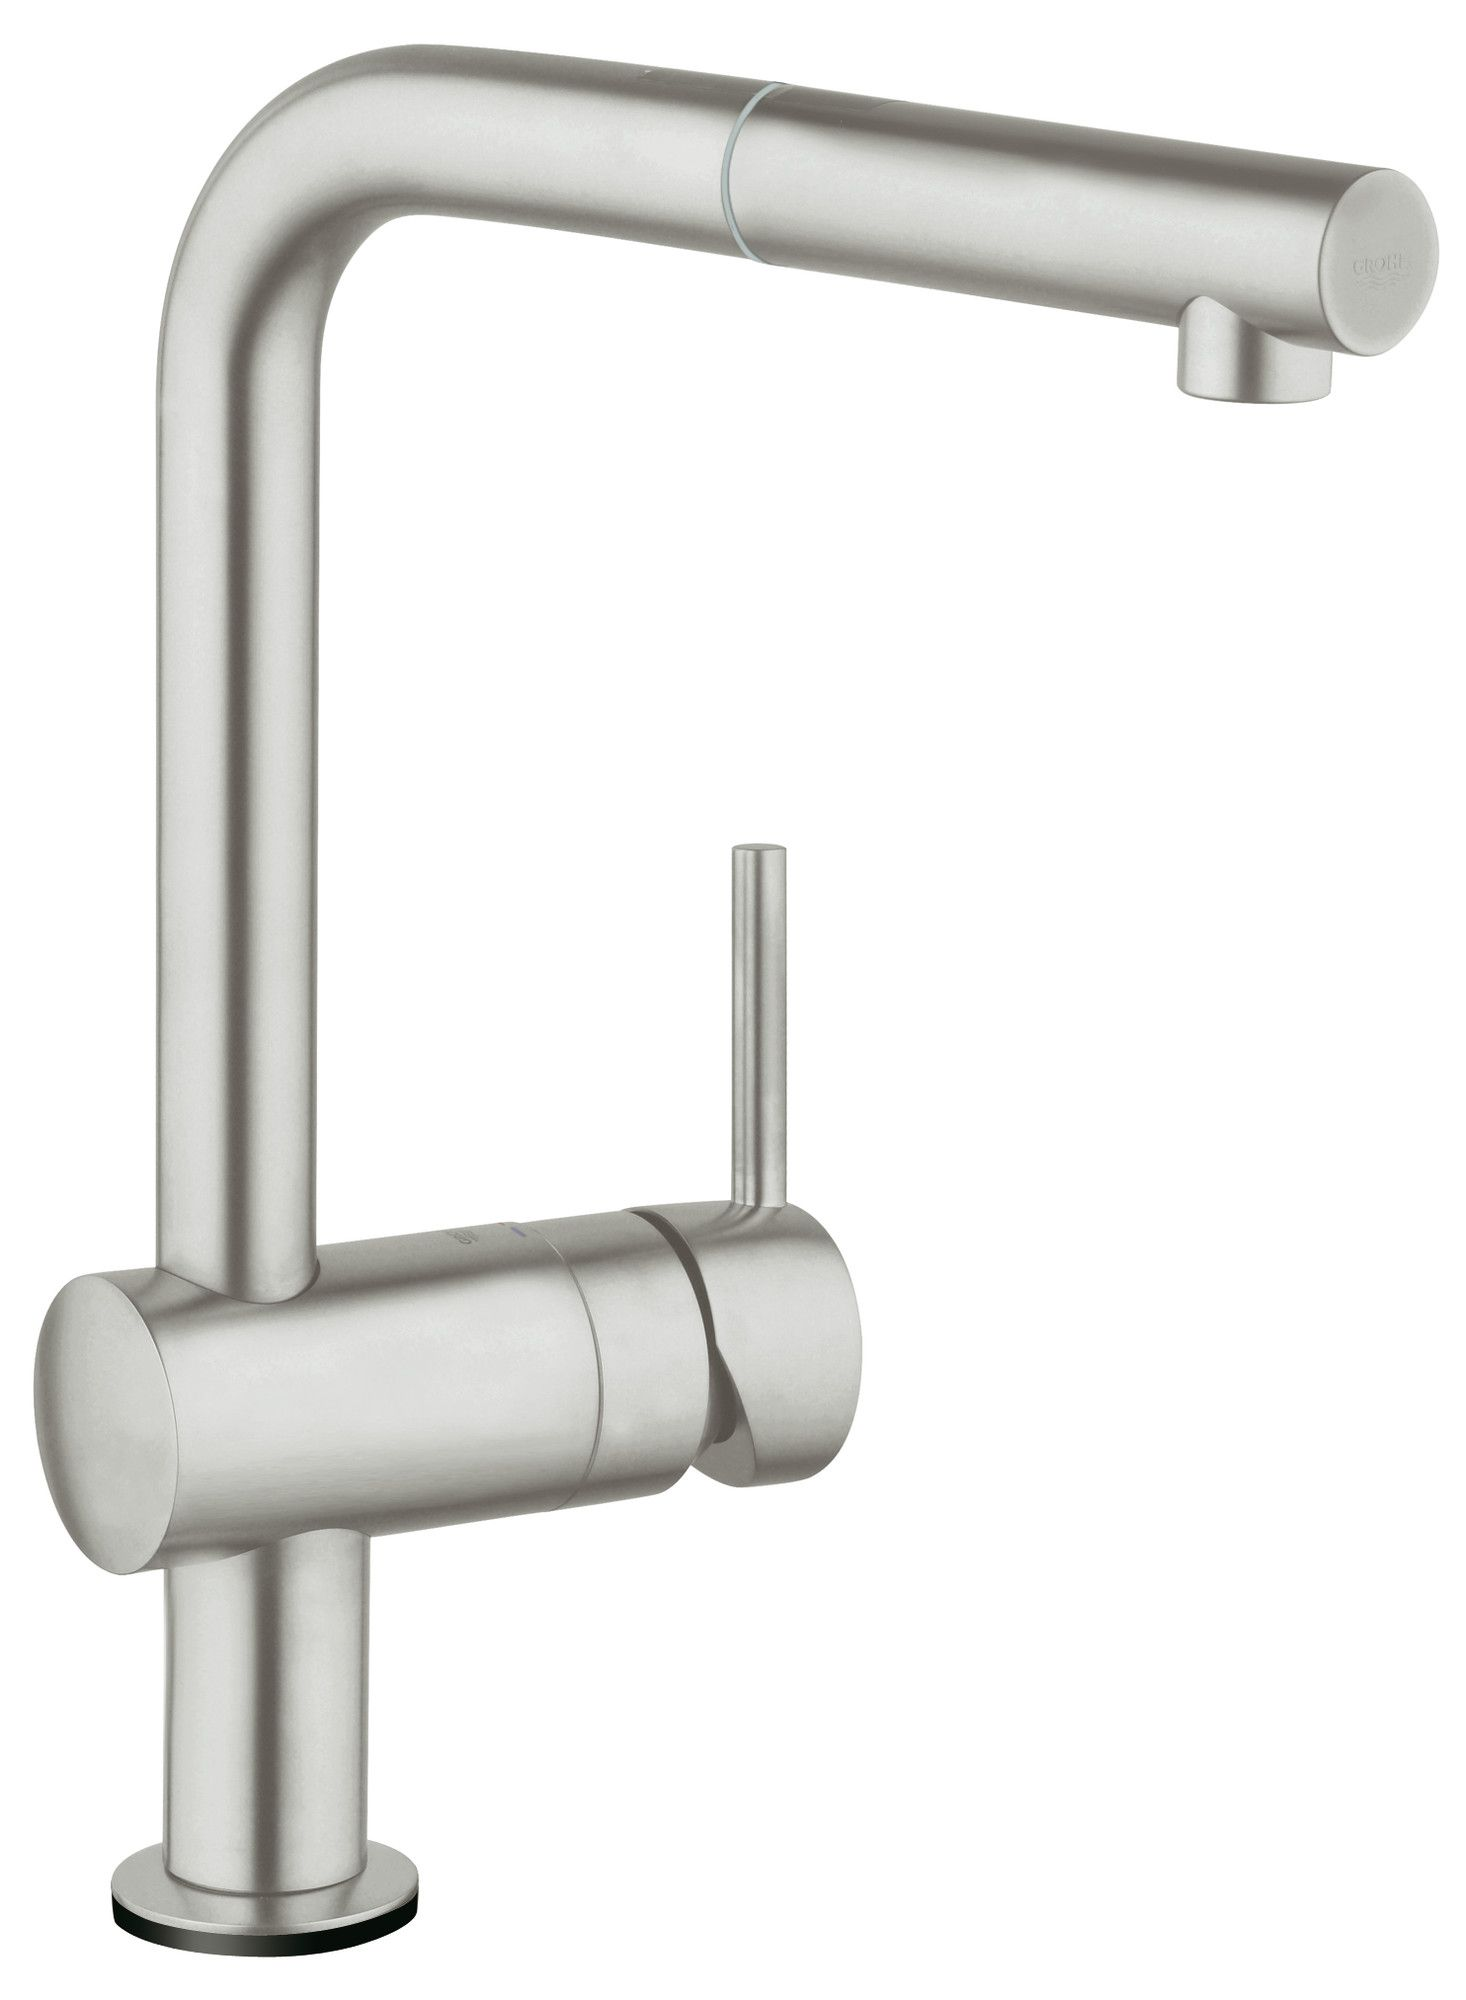 minta single handle deck mounting kitchen faucet products rh hu pinterest com